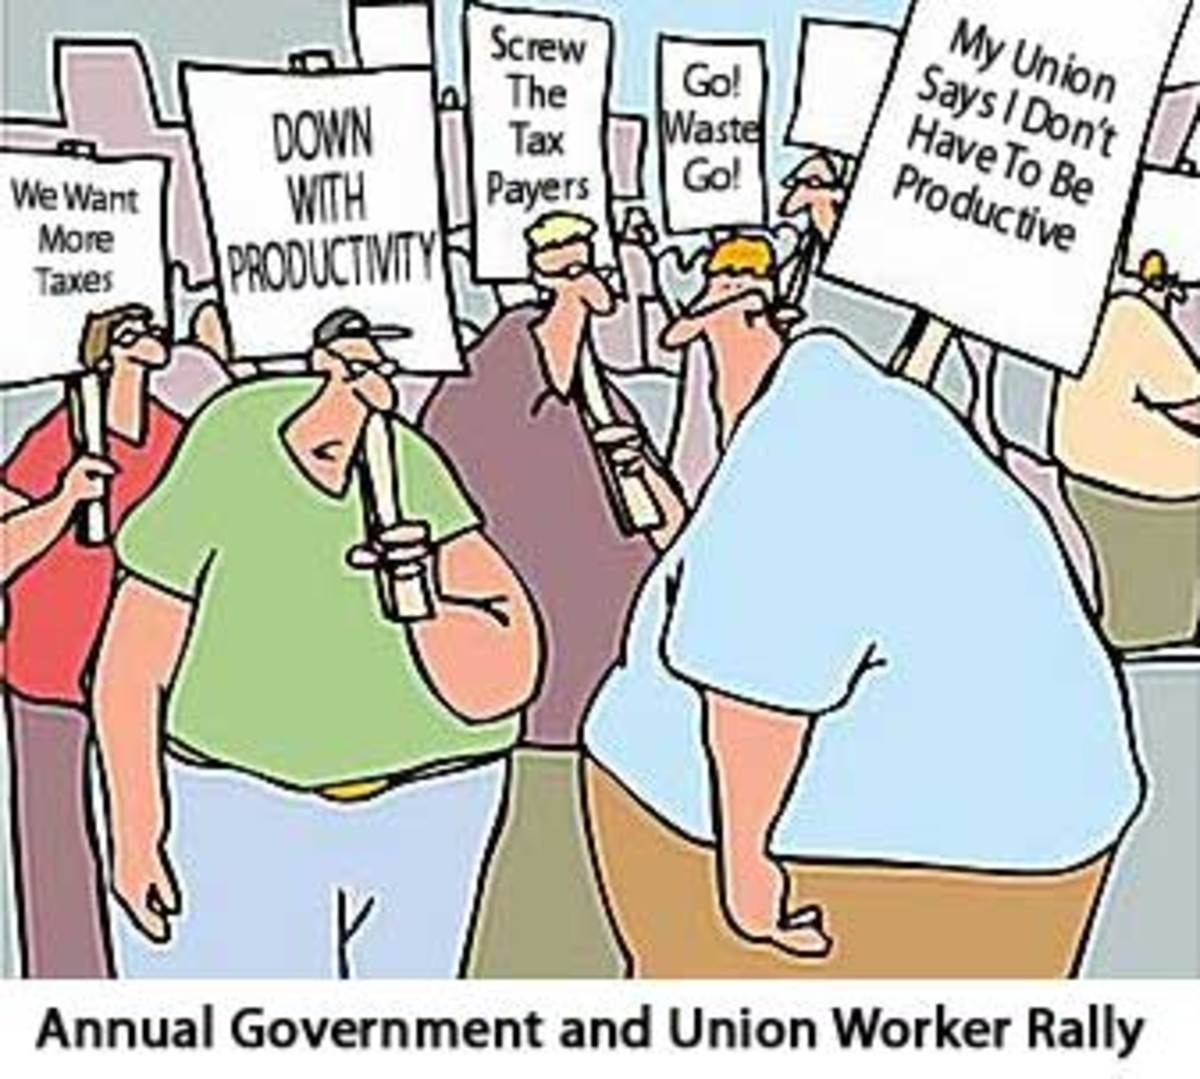 TYPICAL ATTITUDE OF UNION MEMBERS